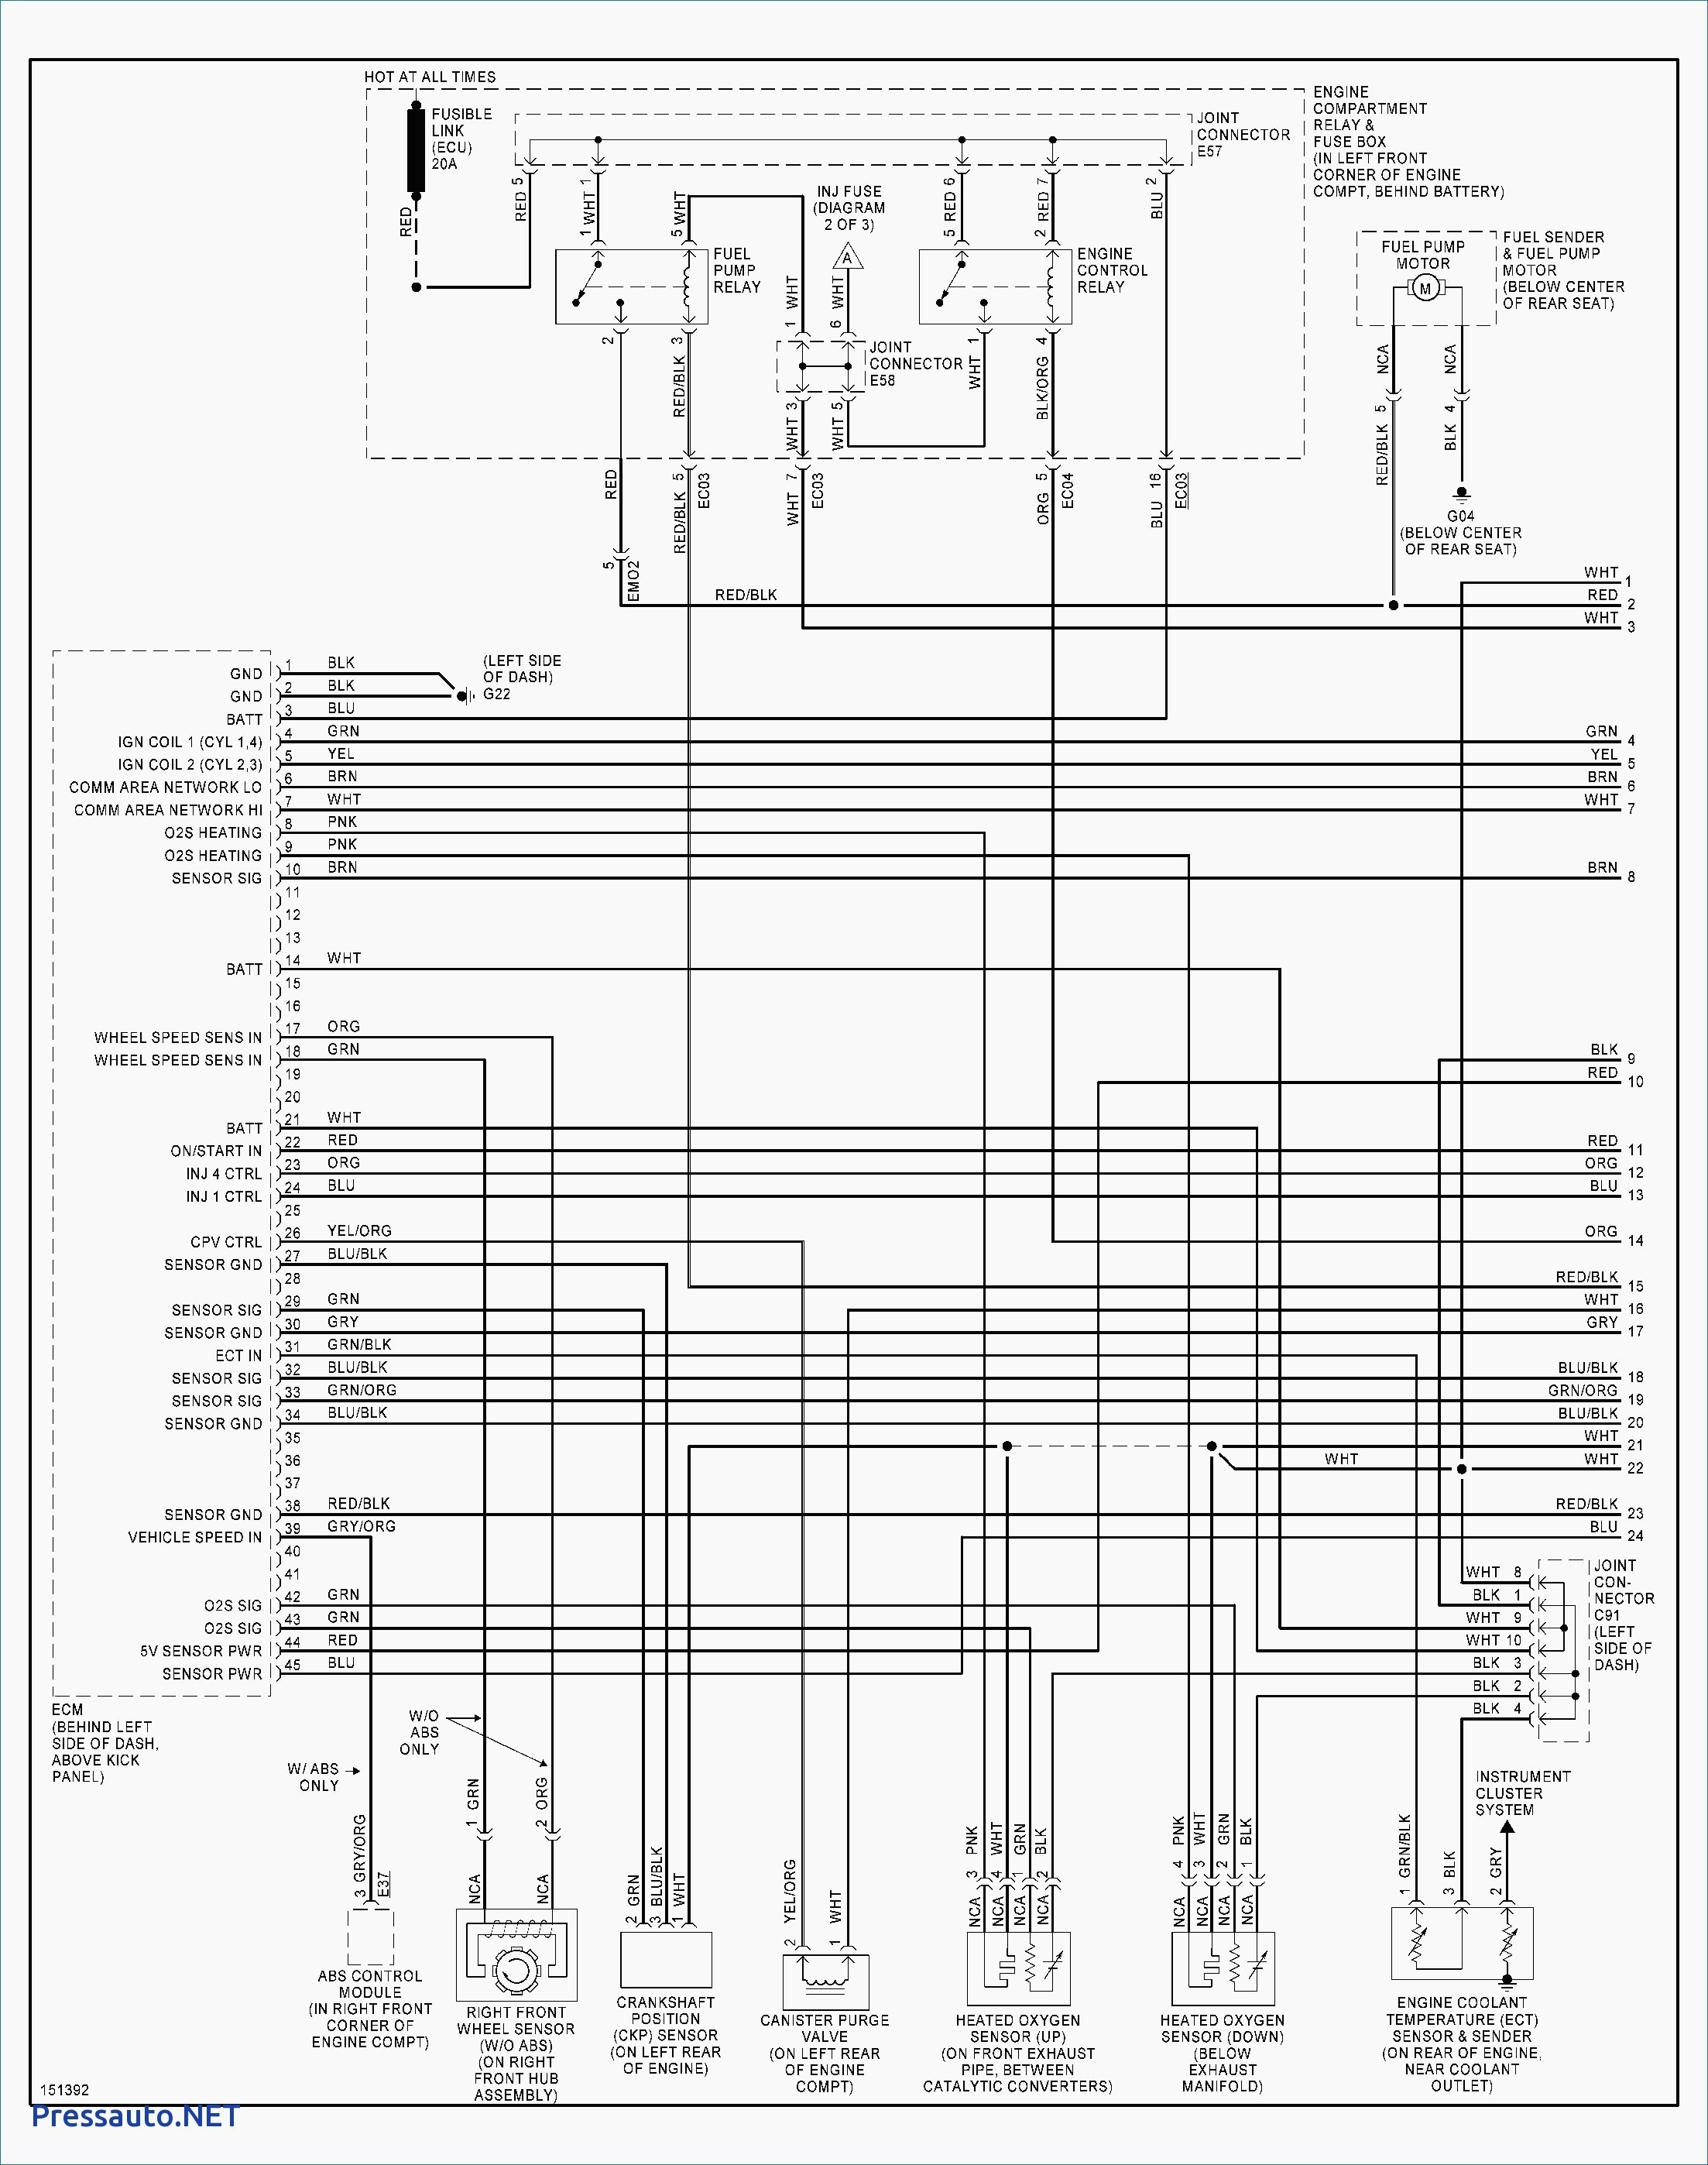 Hyundai Santa Fe Wiring Diagram 2004 Hyundai Santa Fe Engine Diagram Unique Hyundai Wiring Diagrams Of Hyundai Santa Fe Wiring Diagram